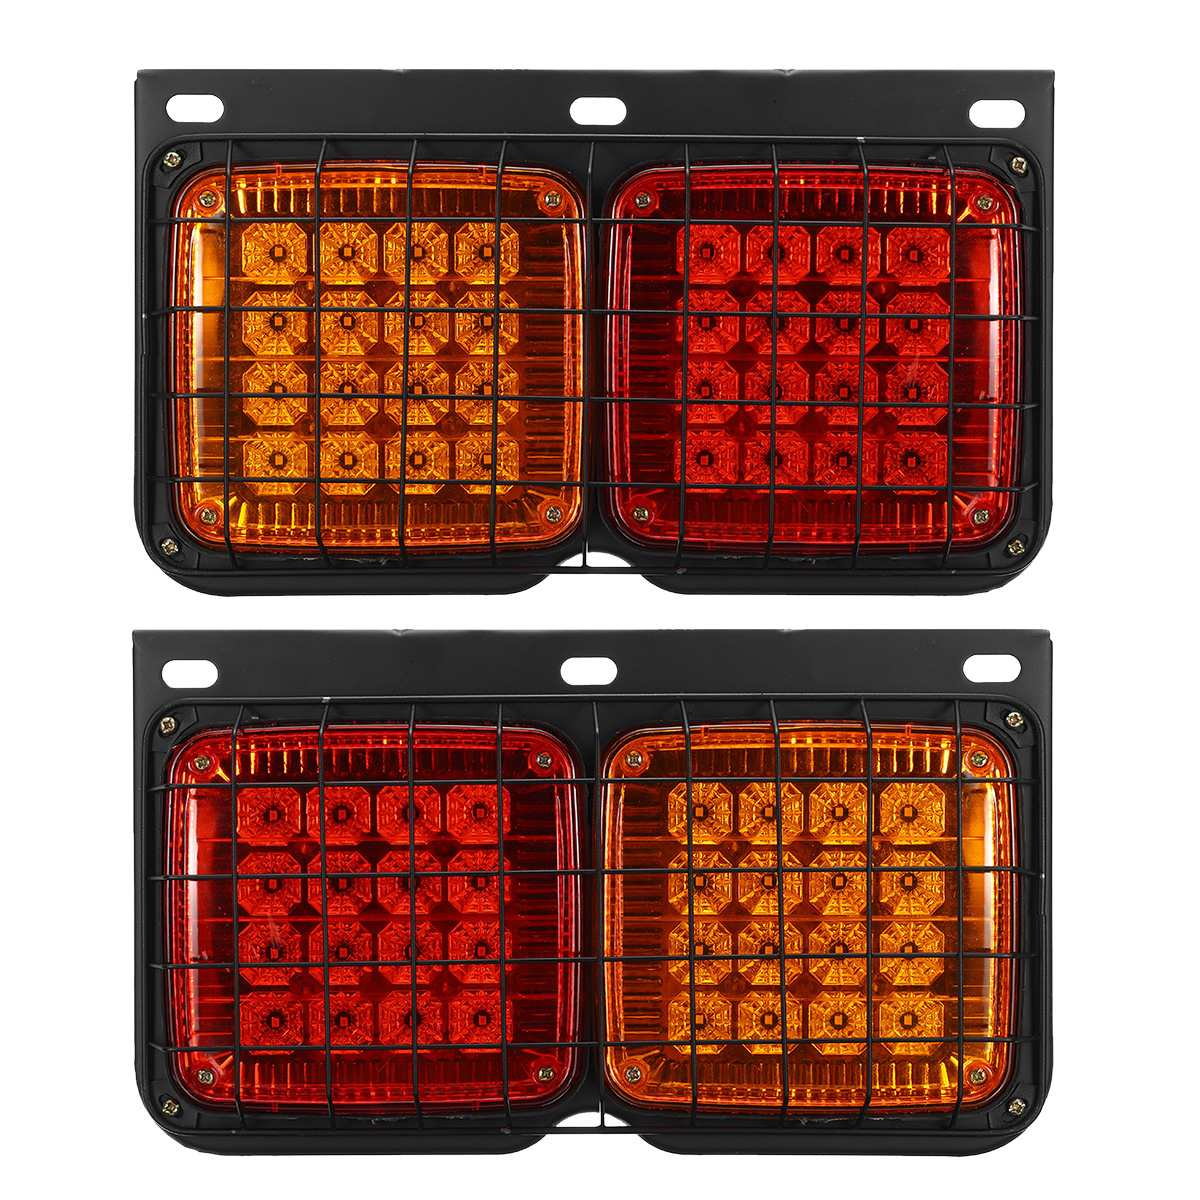 2PCS DC 24V 20 LED Waterproof Trailer Lights Truck Caravan Durable Trailer Light Auto Rear Side Lamp Car Truck Accessories